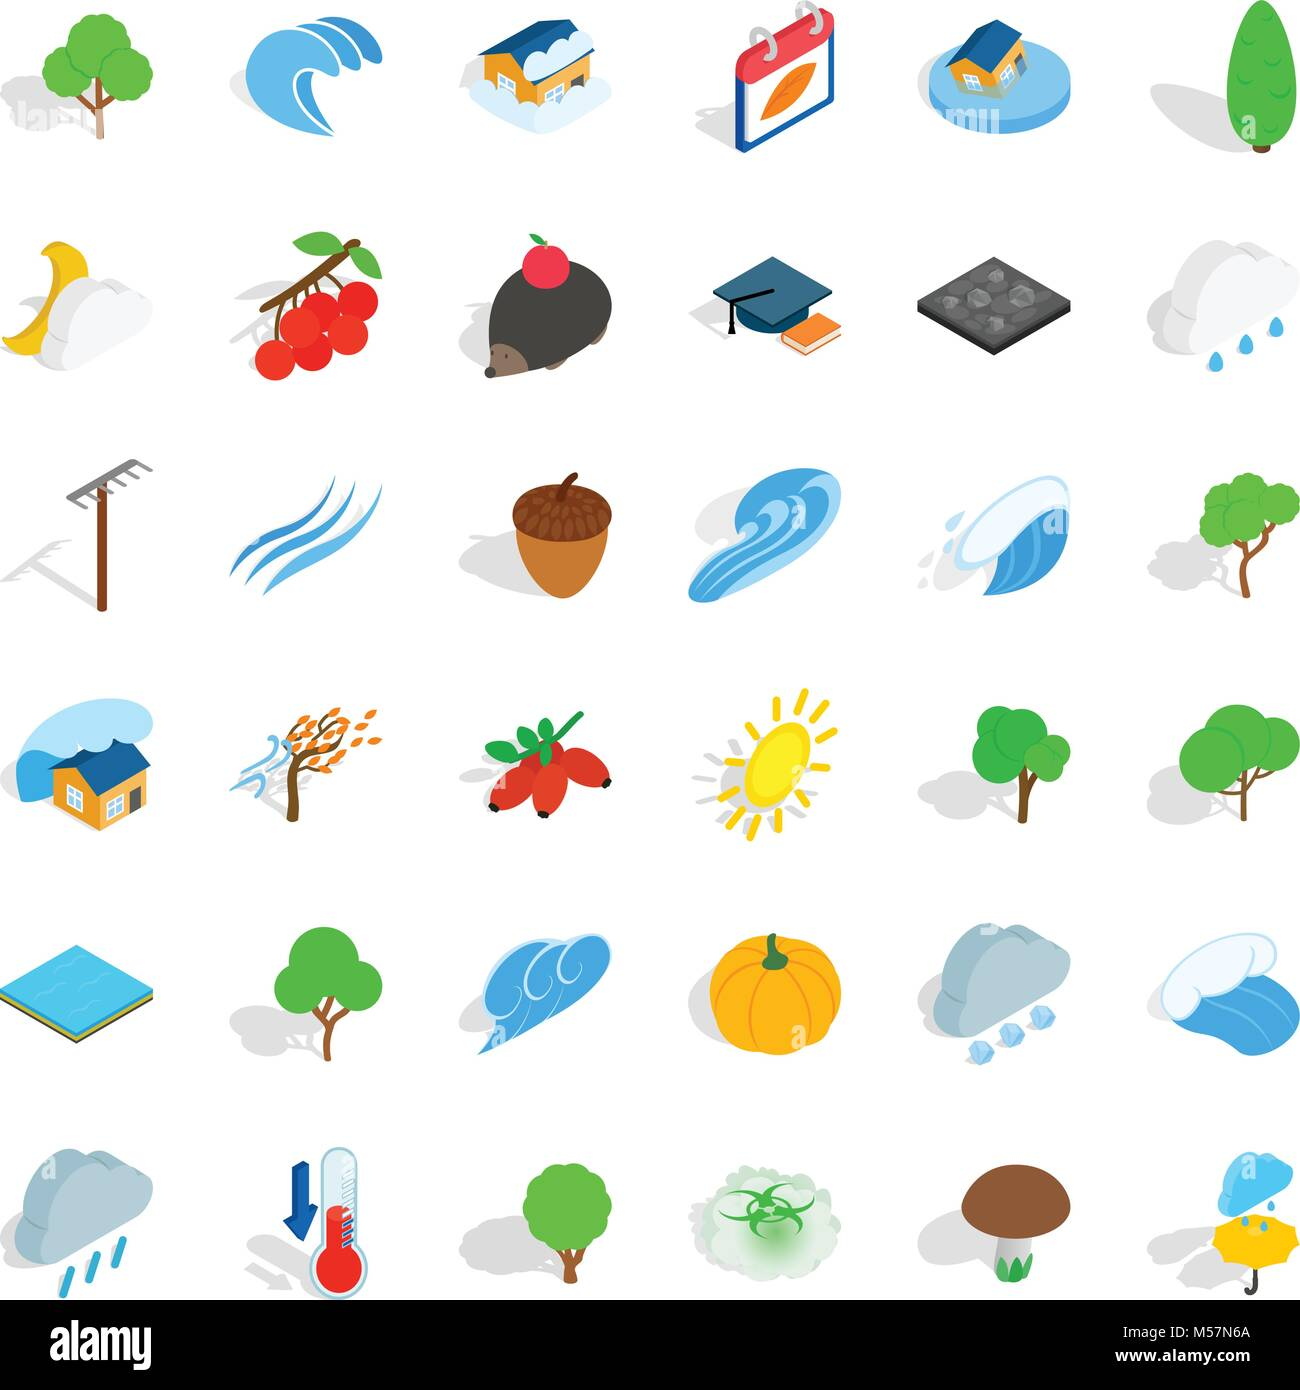 Earthly icons set, isometric style - Stock Image